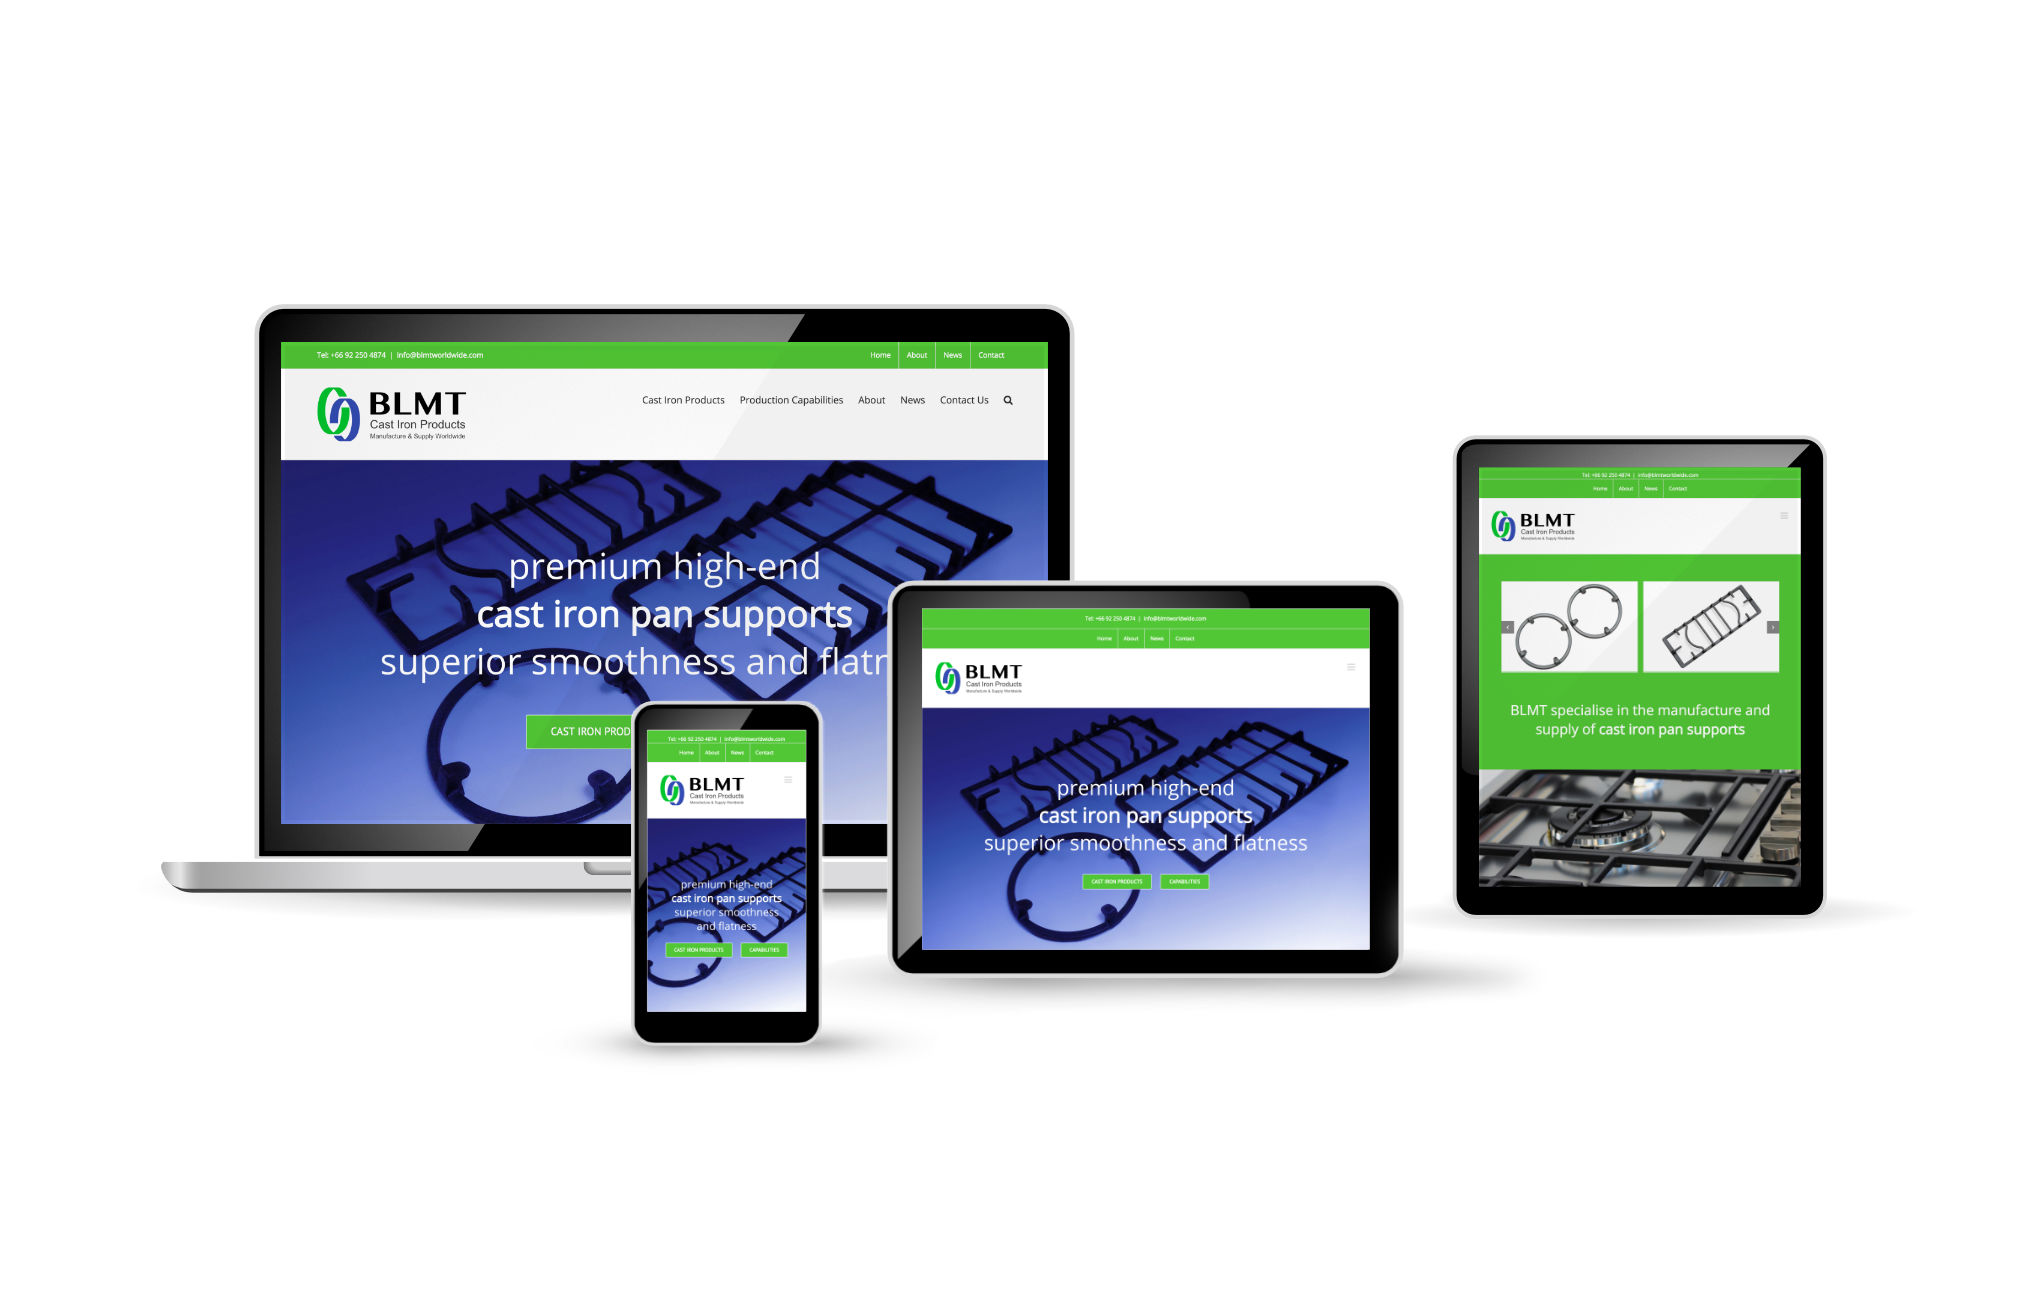 Professional Wordpress responsive Website produced for BLMT by orangebox